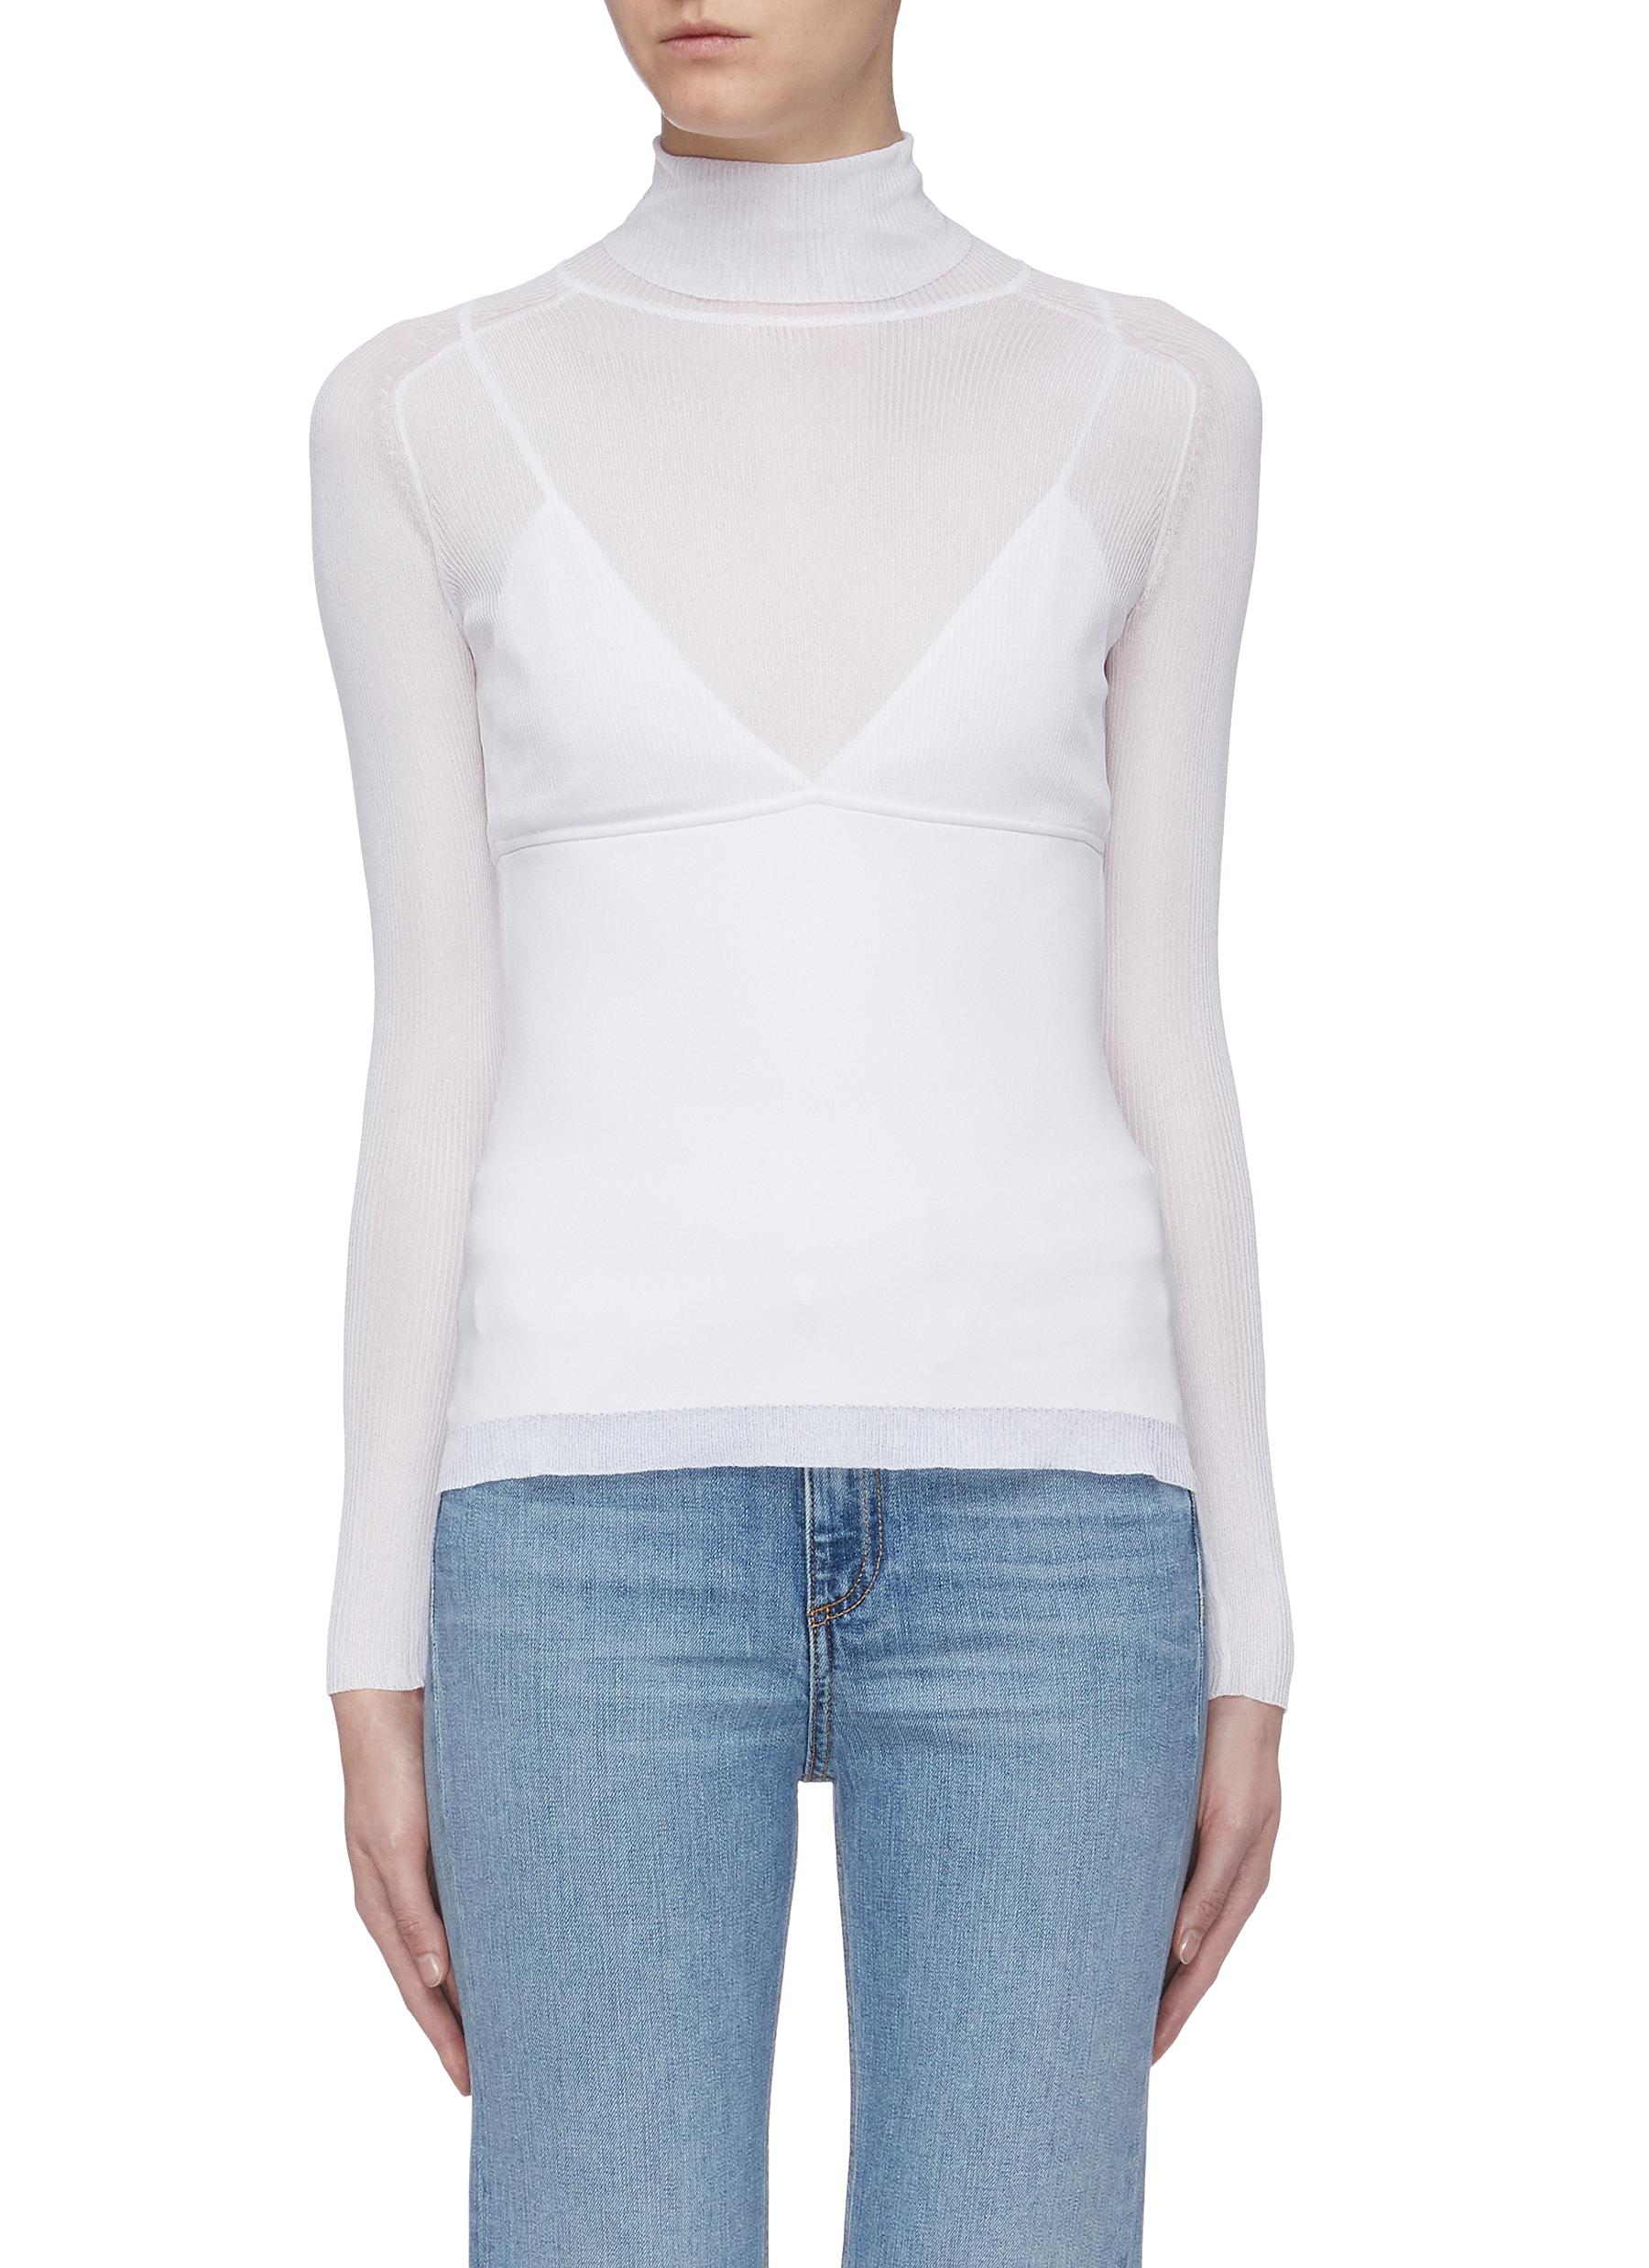 Camisole panel rib knit turtleneck top by Proenza Schouler